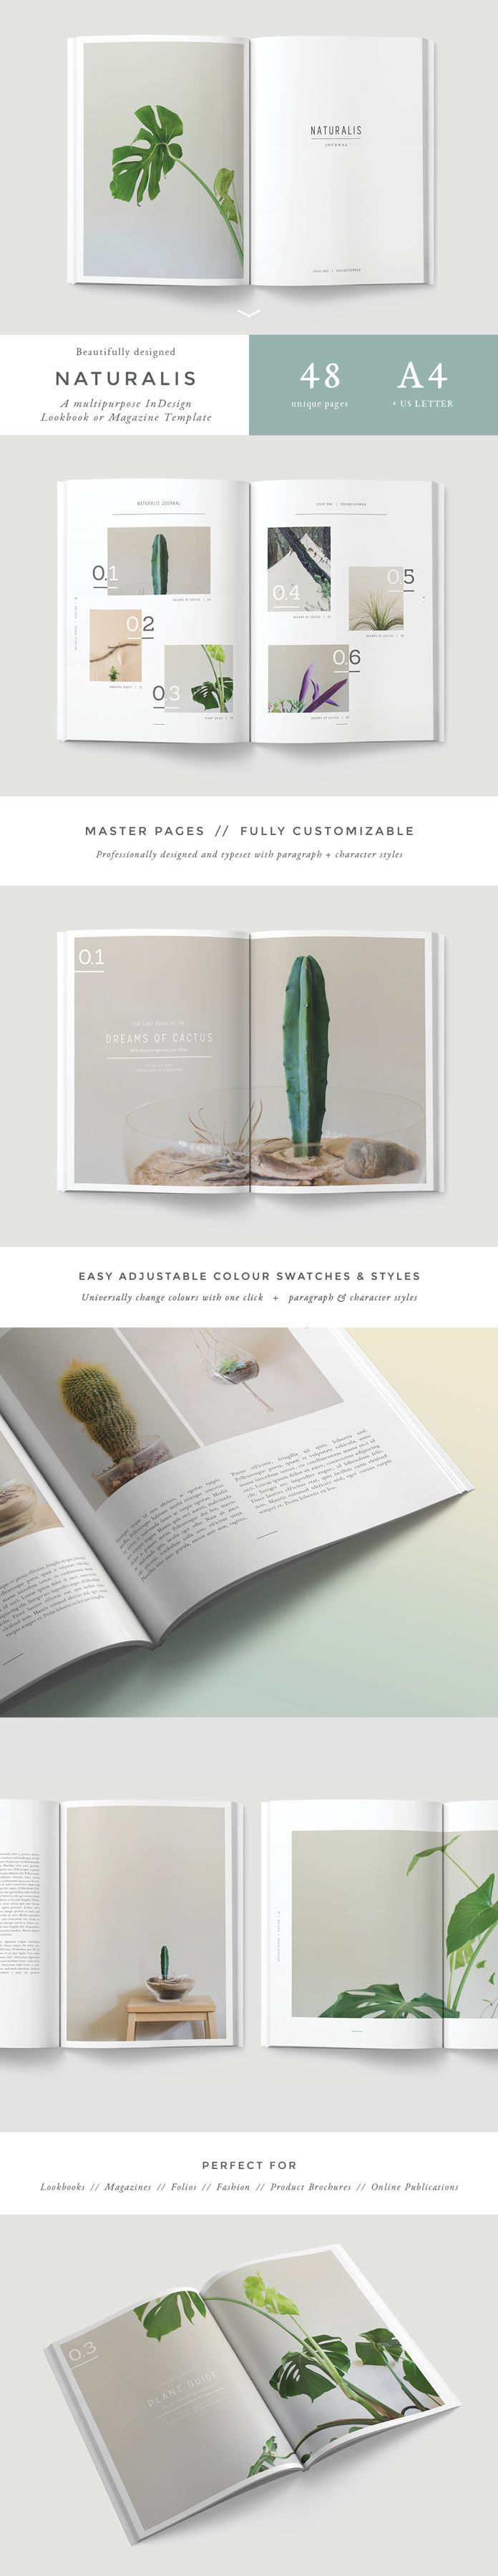 Adobe InDesign Template for Lookbooks and Magazines | Diseño ...